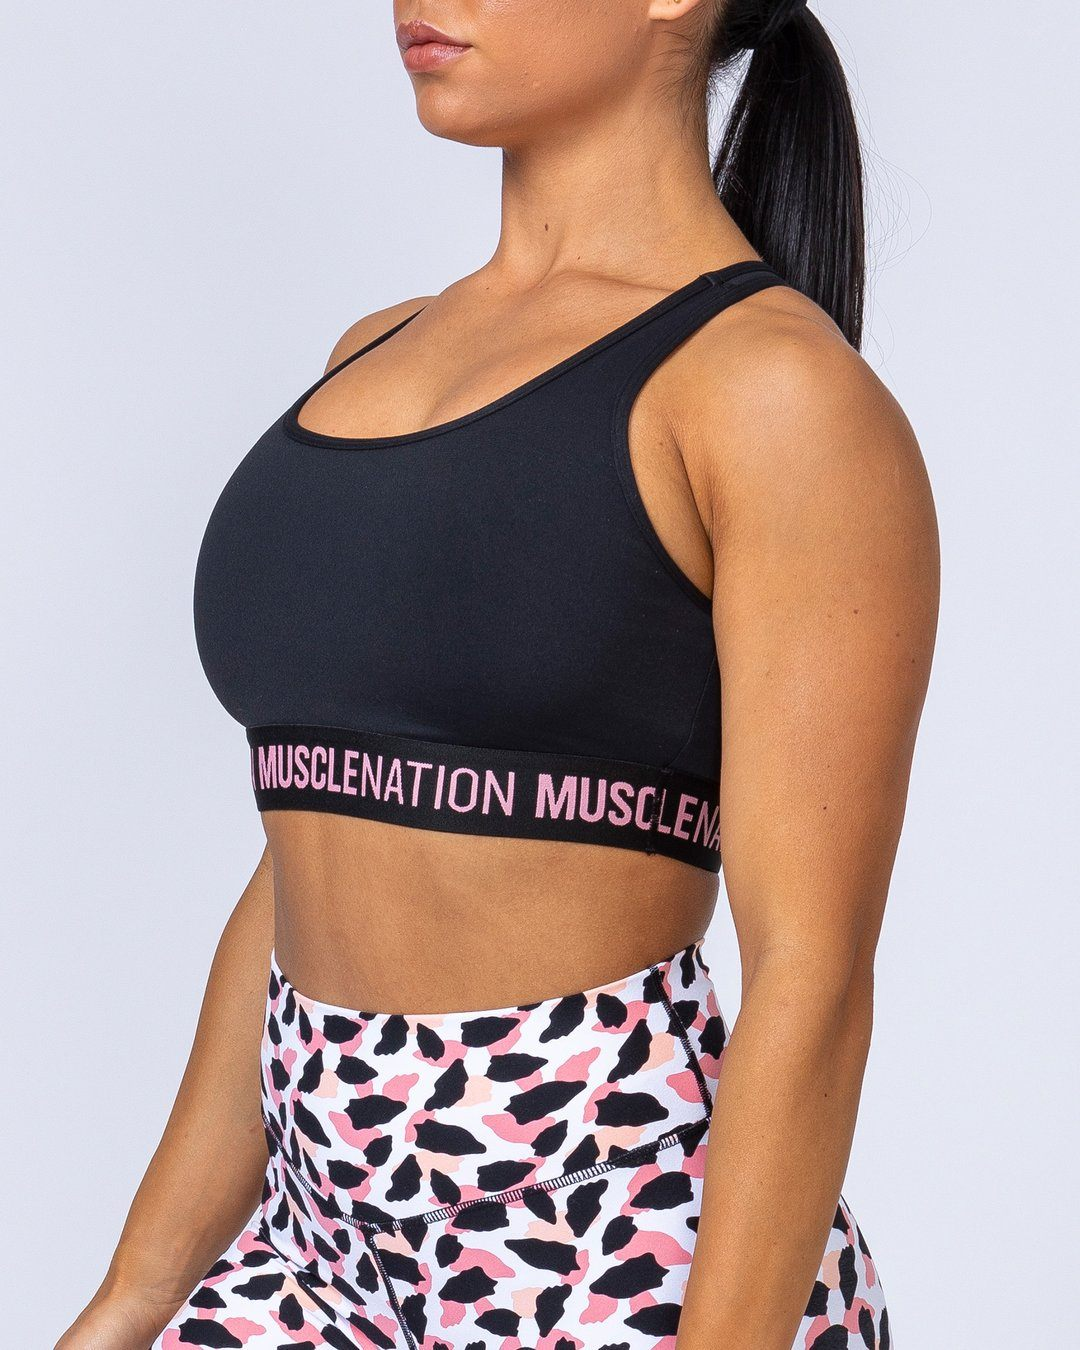 Muscle Nation Knockout Bra - Black/Pink Sherbet